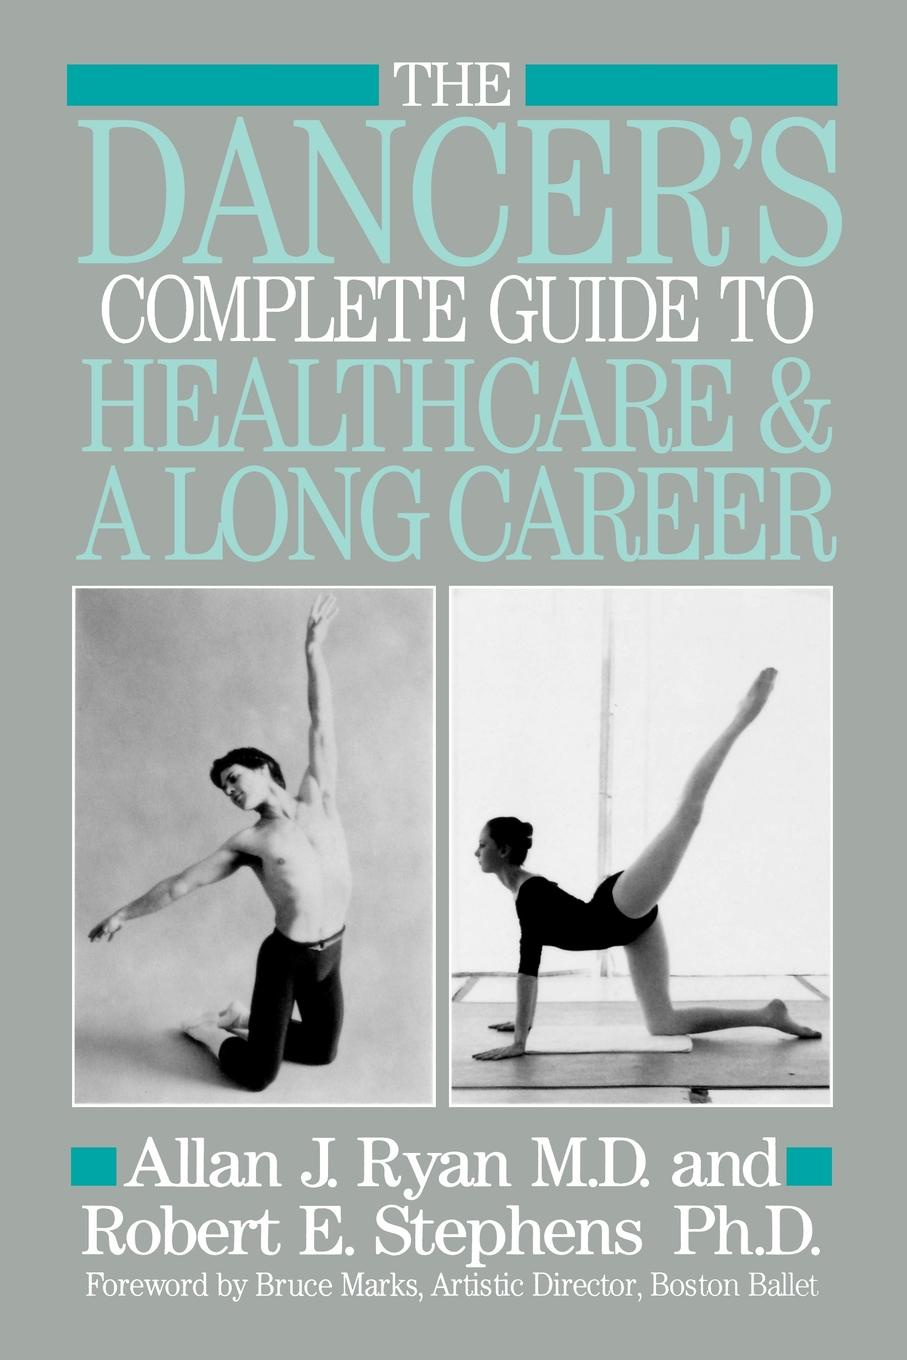 Allen J. Ryan, Allan J. Ryan, Robert E. Stephens The Dancer's Complete Guide to Healthcare the complete guide to sports injuries